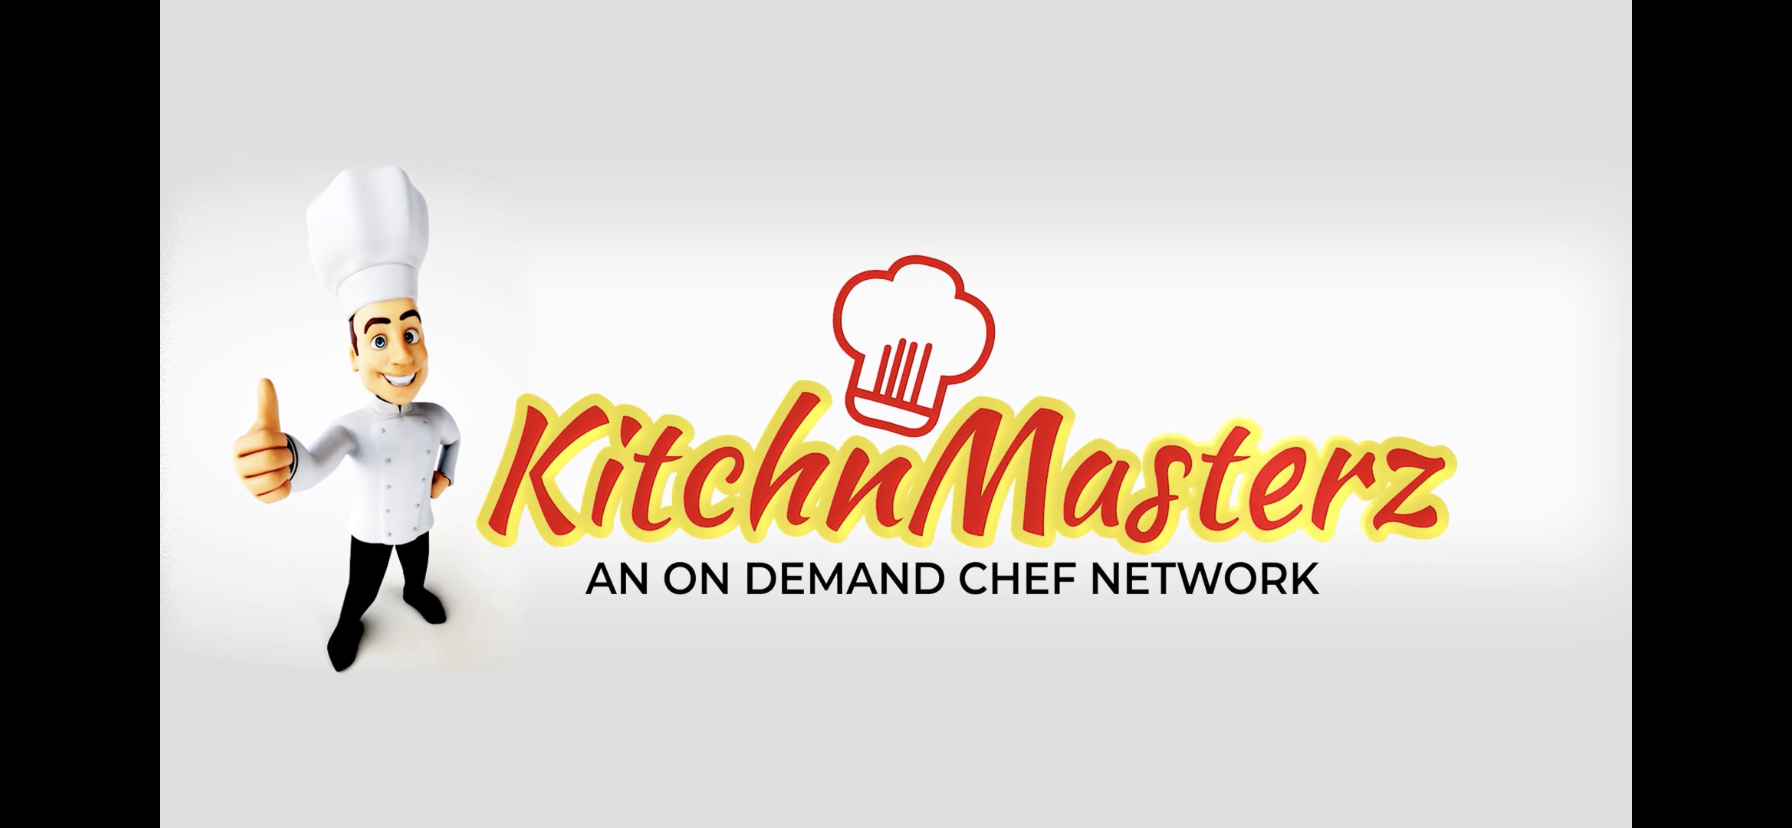 Introducing KitchnMasterz, a U.S. wide-based, on-demand, in-home chef services that include bespoke in-home meals, meal-prepping, catering, events, private dinners, and bar tending.